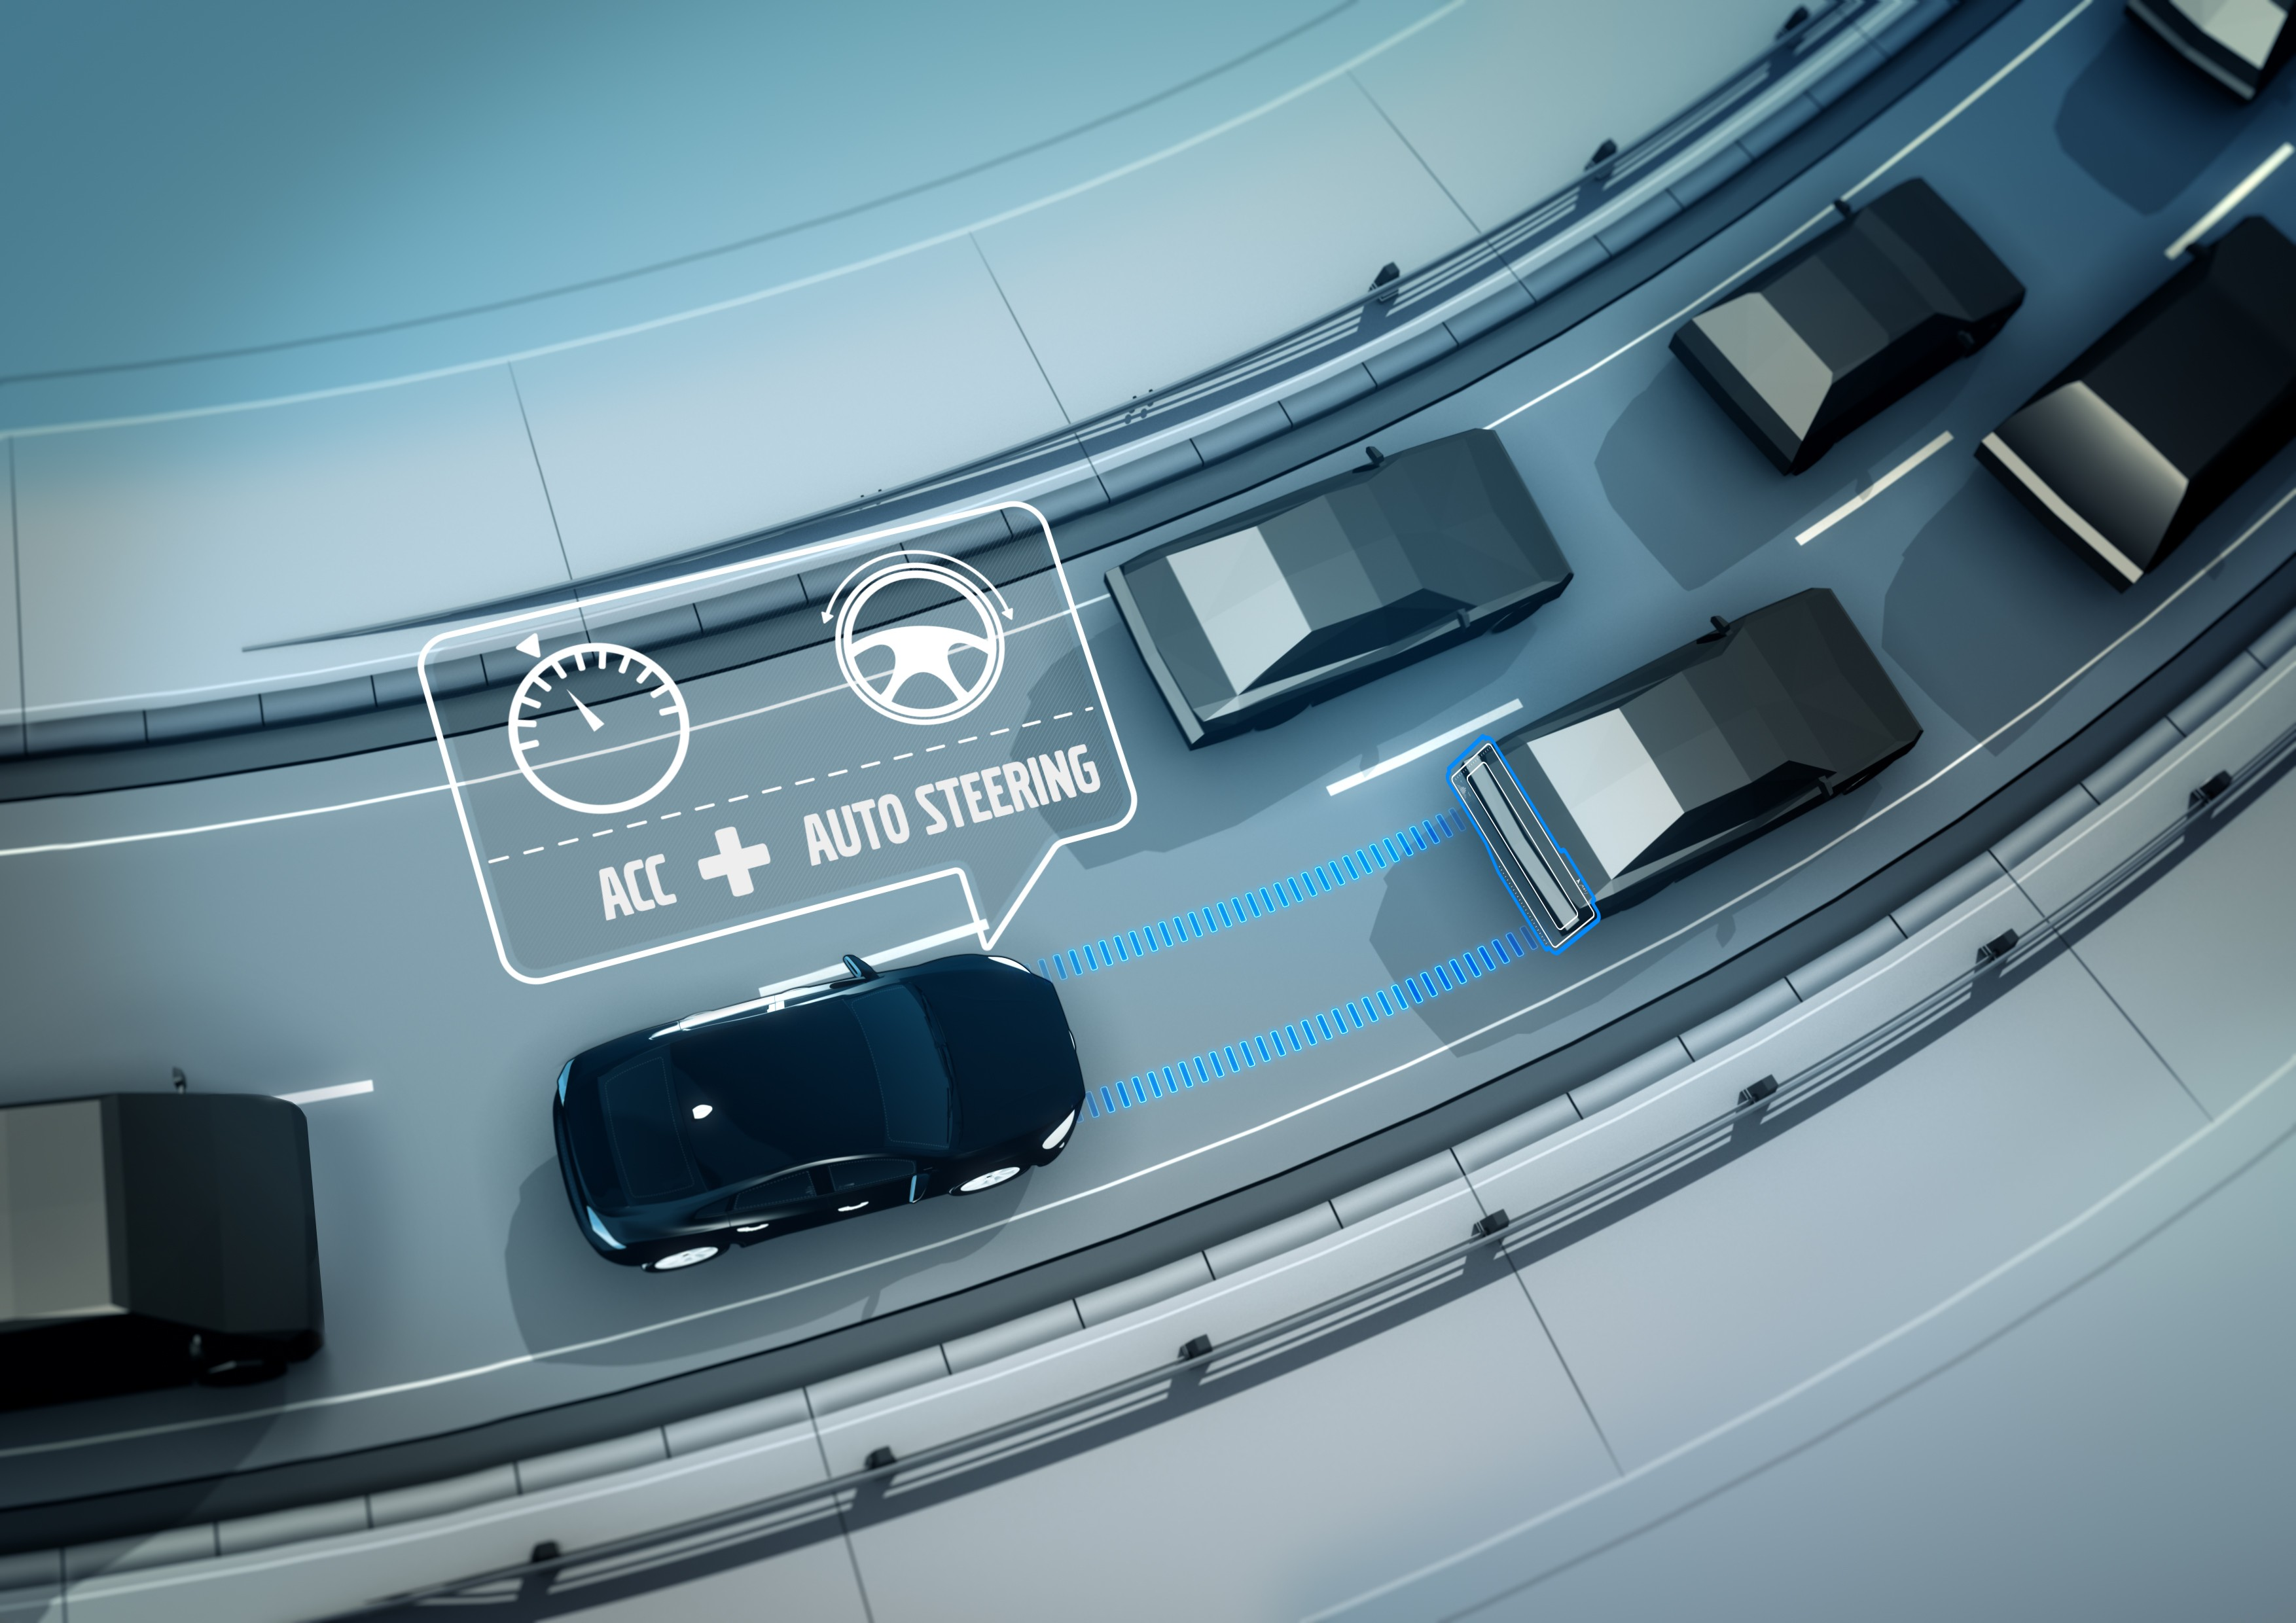 Assistance systems are a welcome touch on a used car